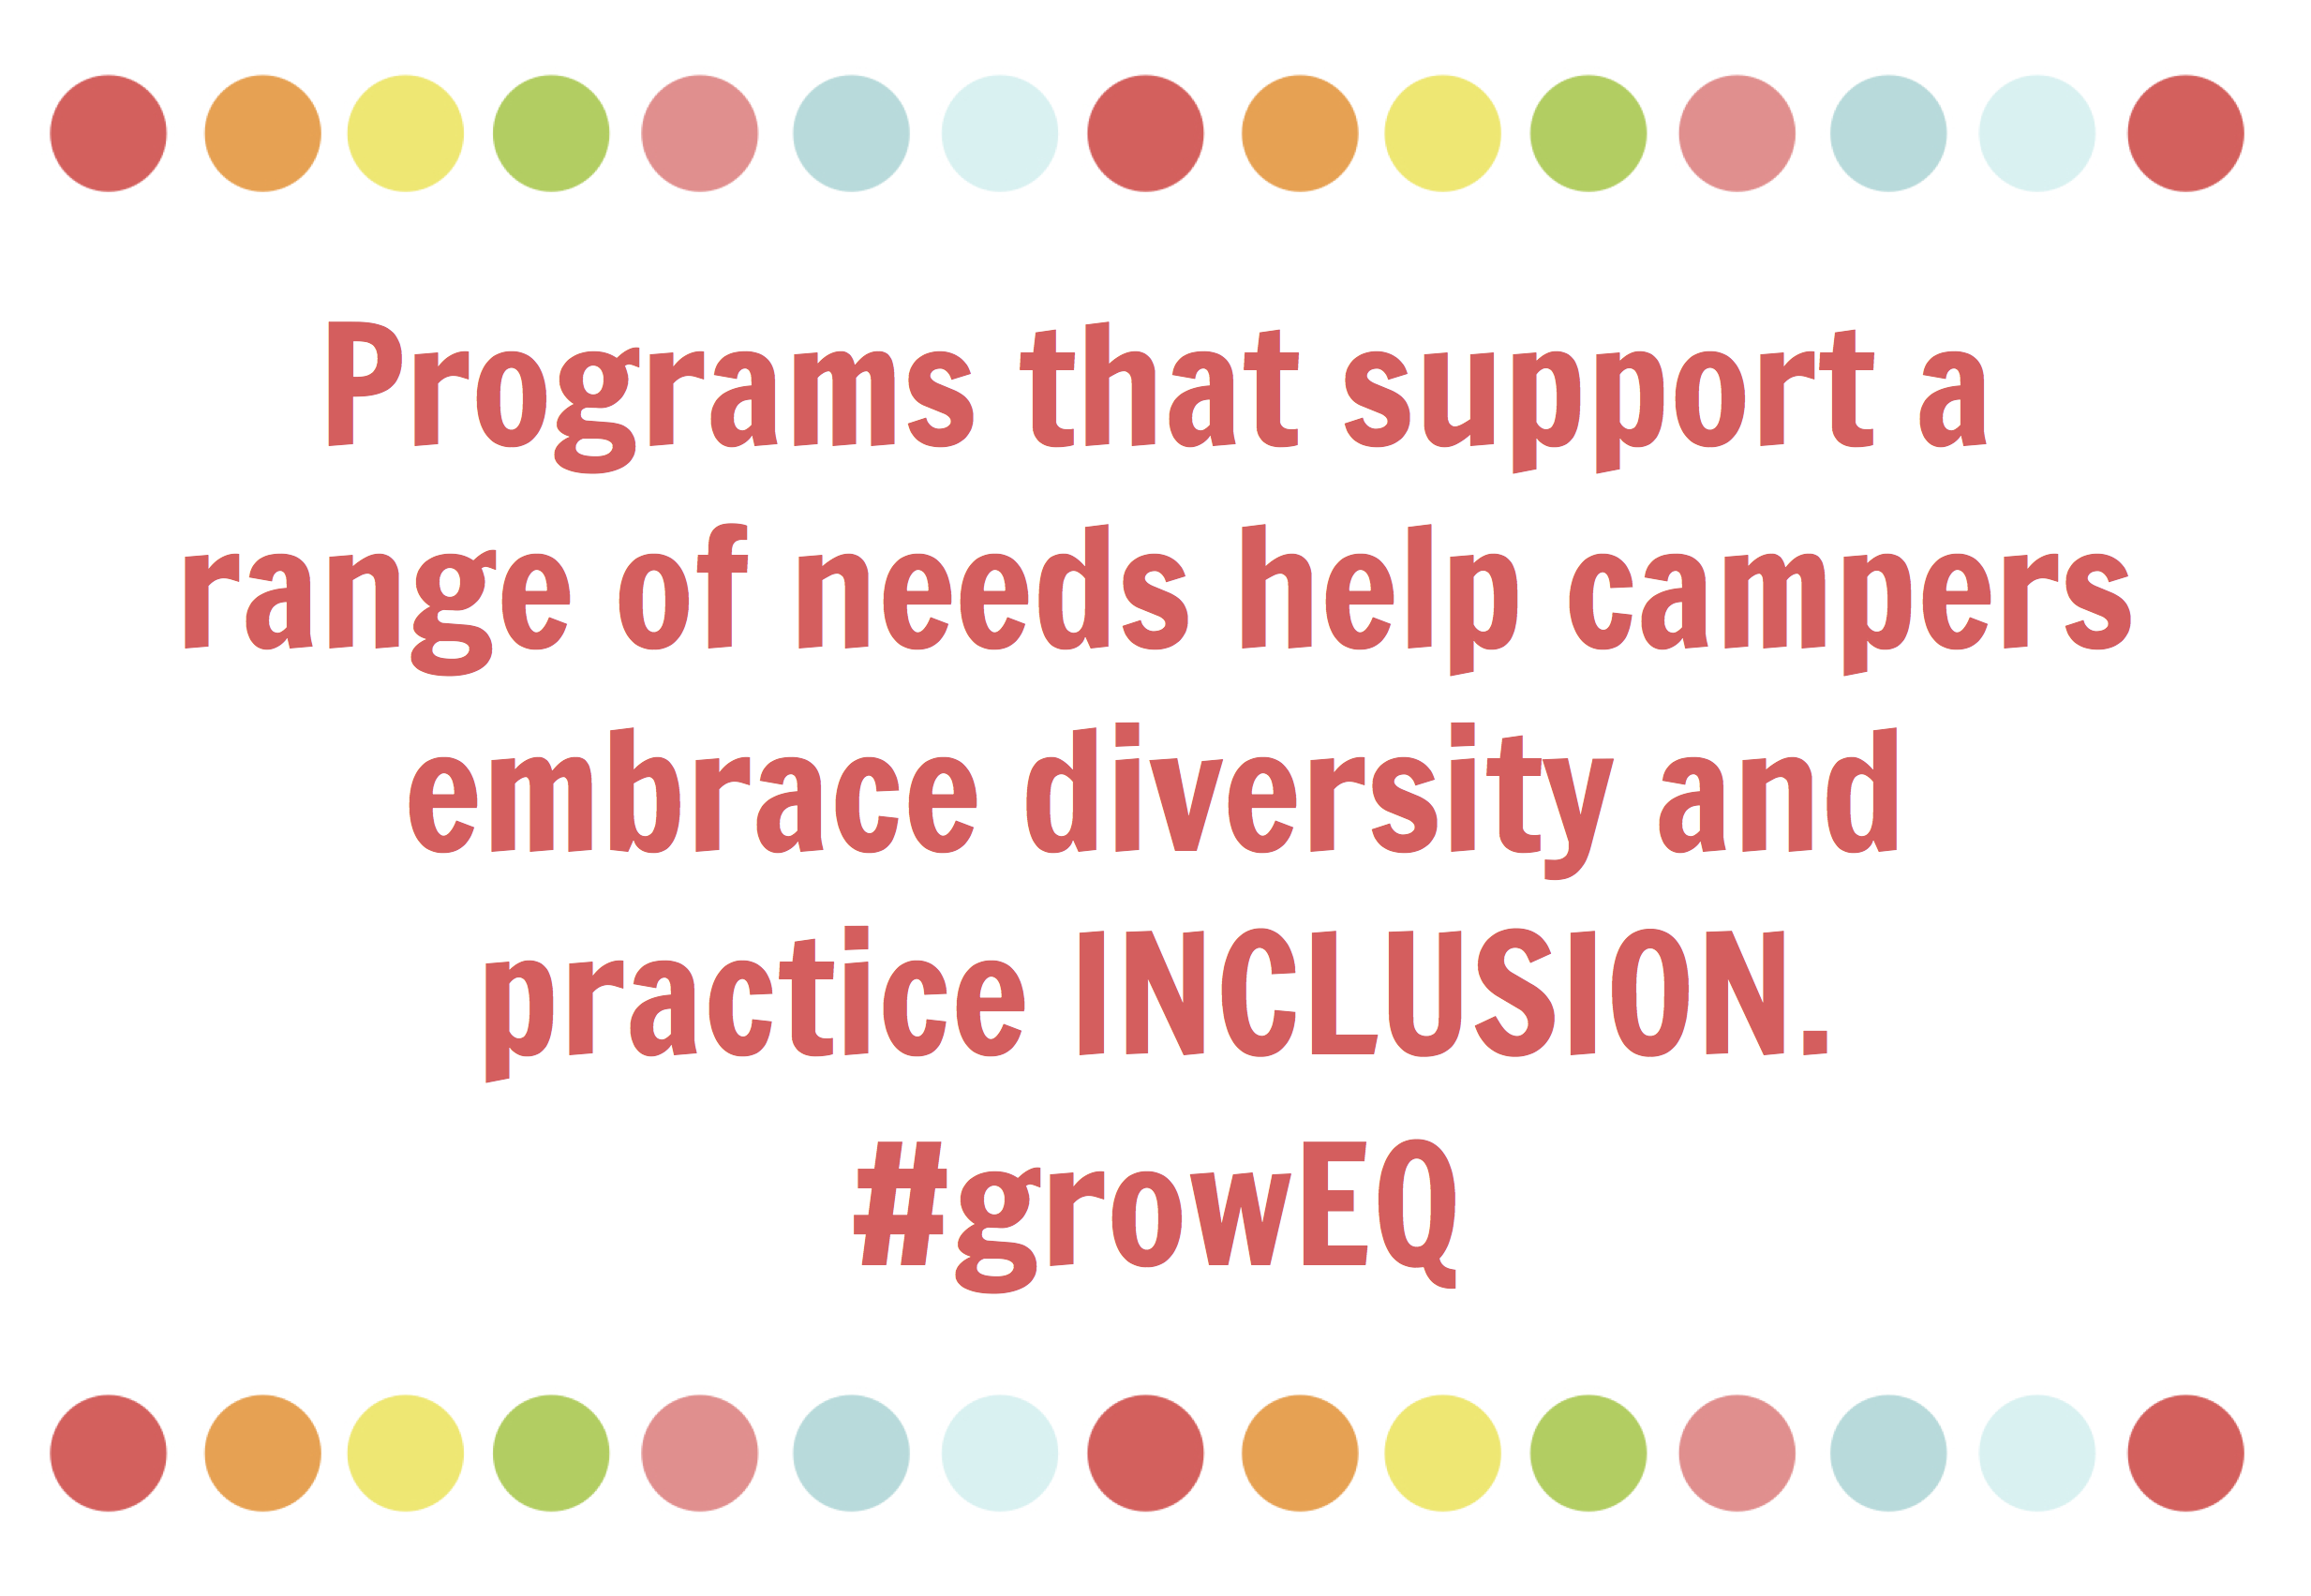 does the summer camp embrace diversity and practice inclusion